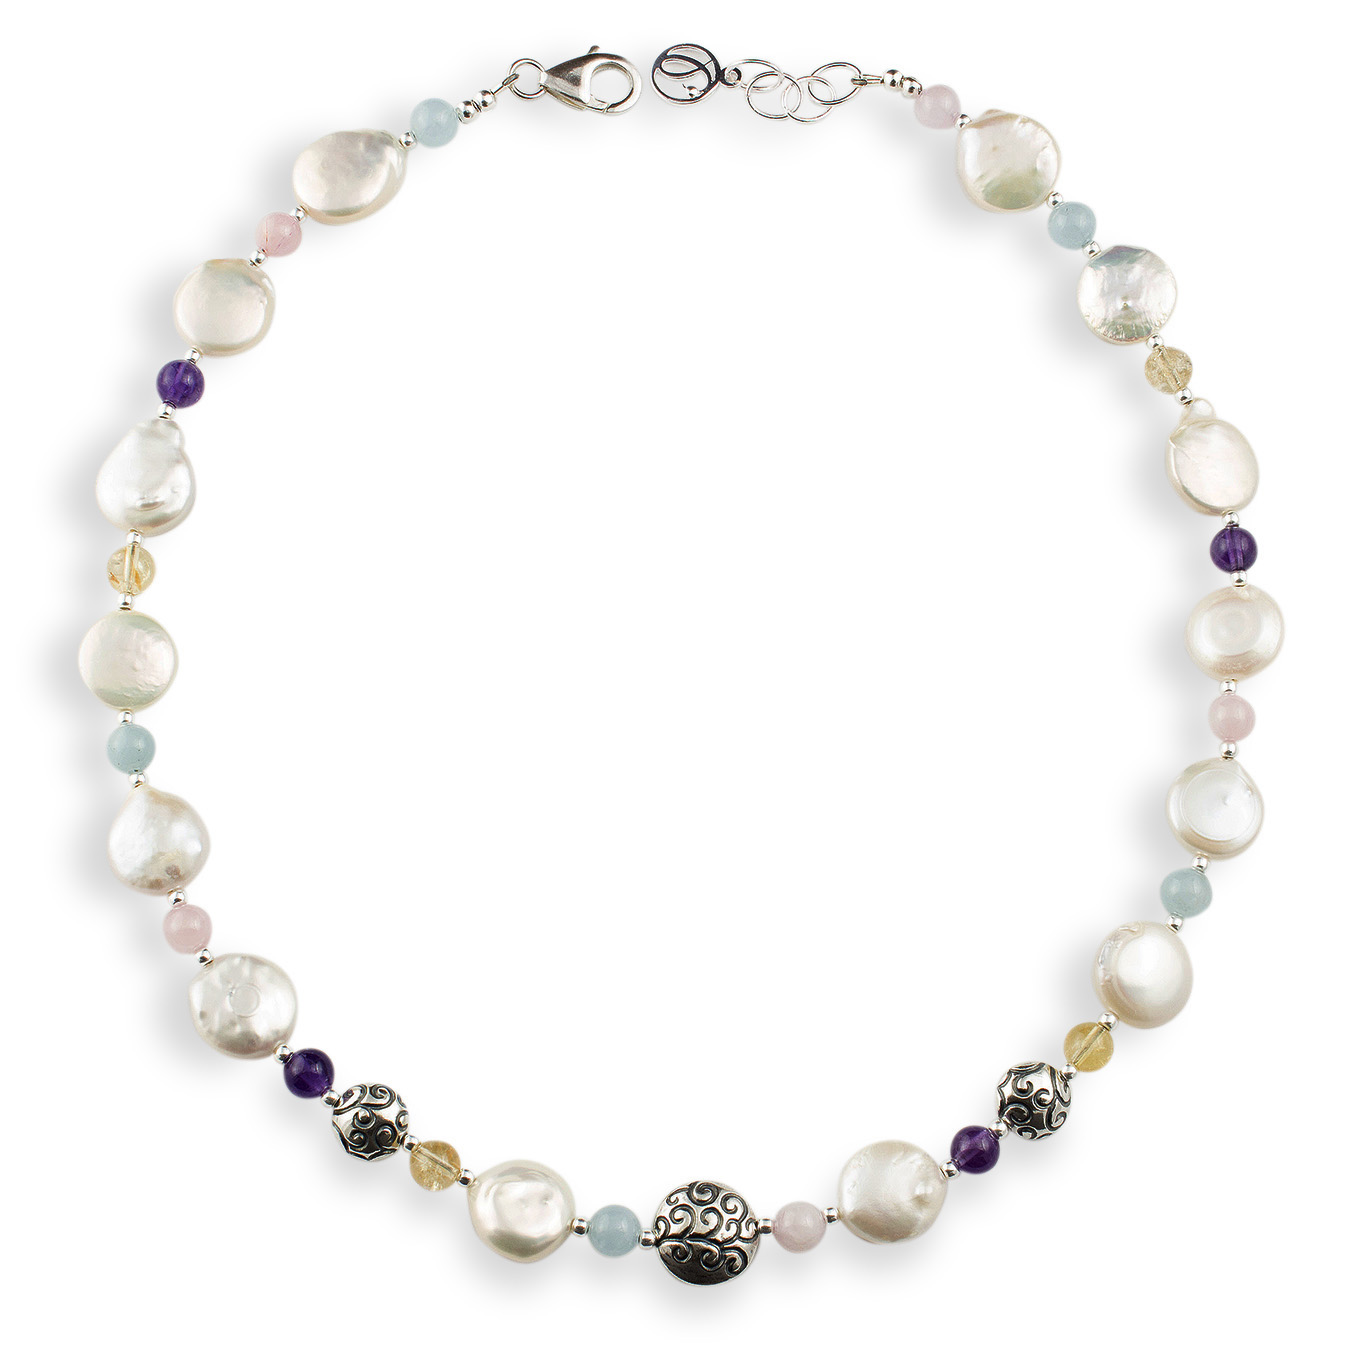 Customizable necklace with choice of coin pearls and aquamarine